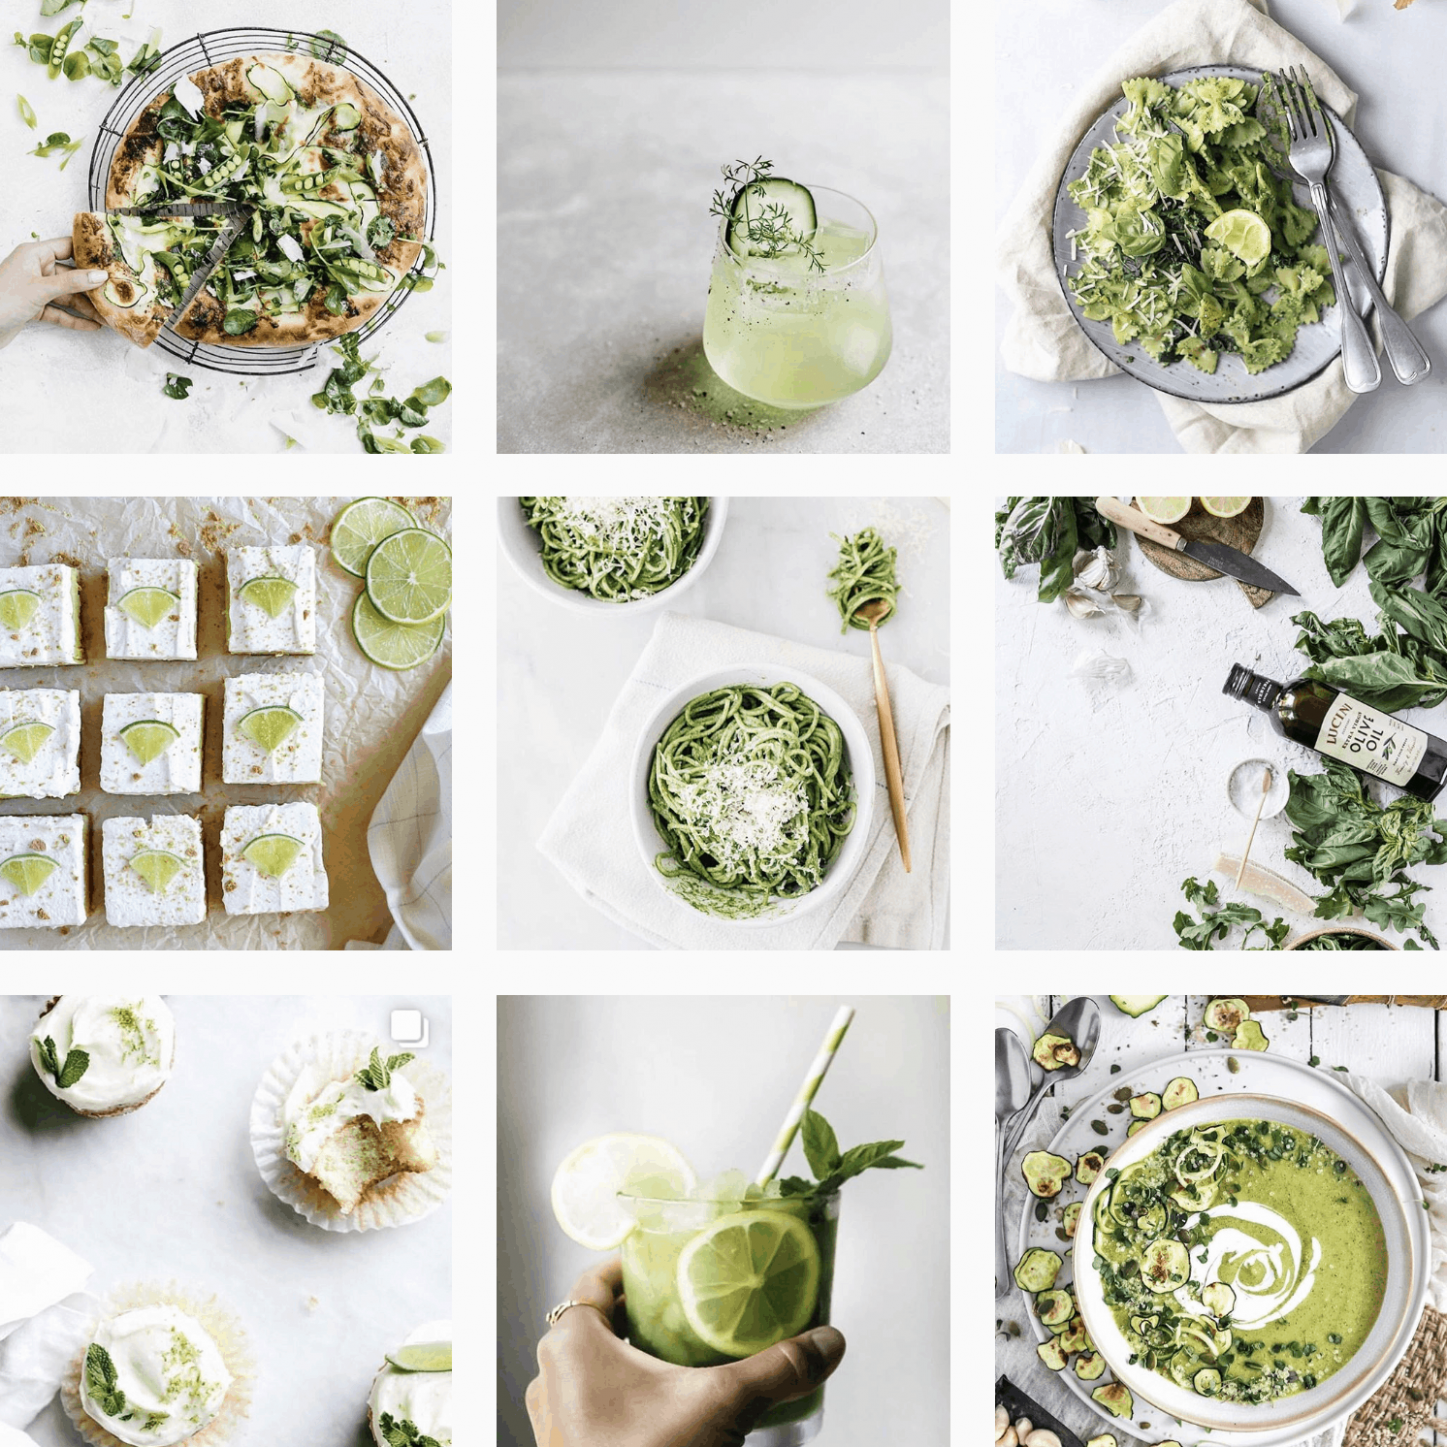 11 Ways to Curate the Perfect Food Instagram Feed - Broma Bakery - Food Recipes On Instagram